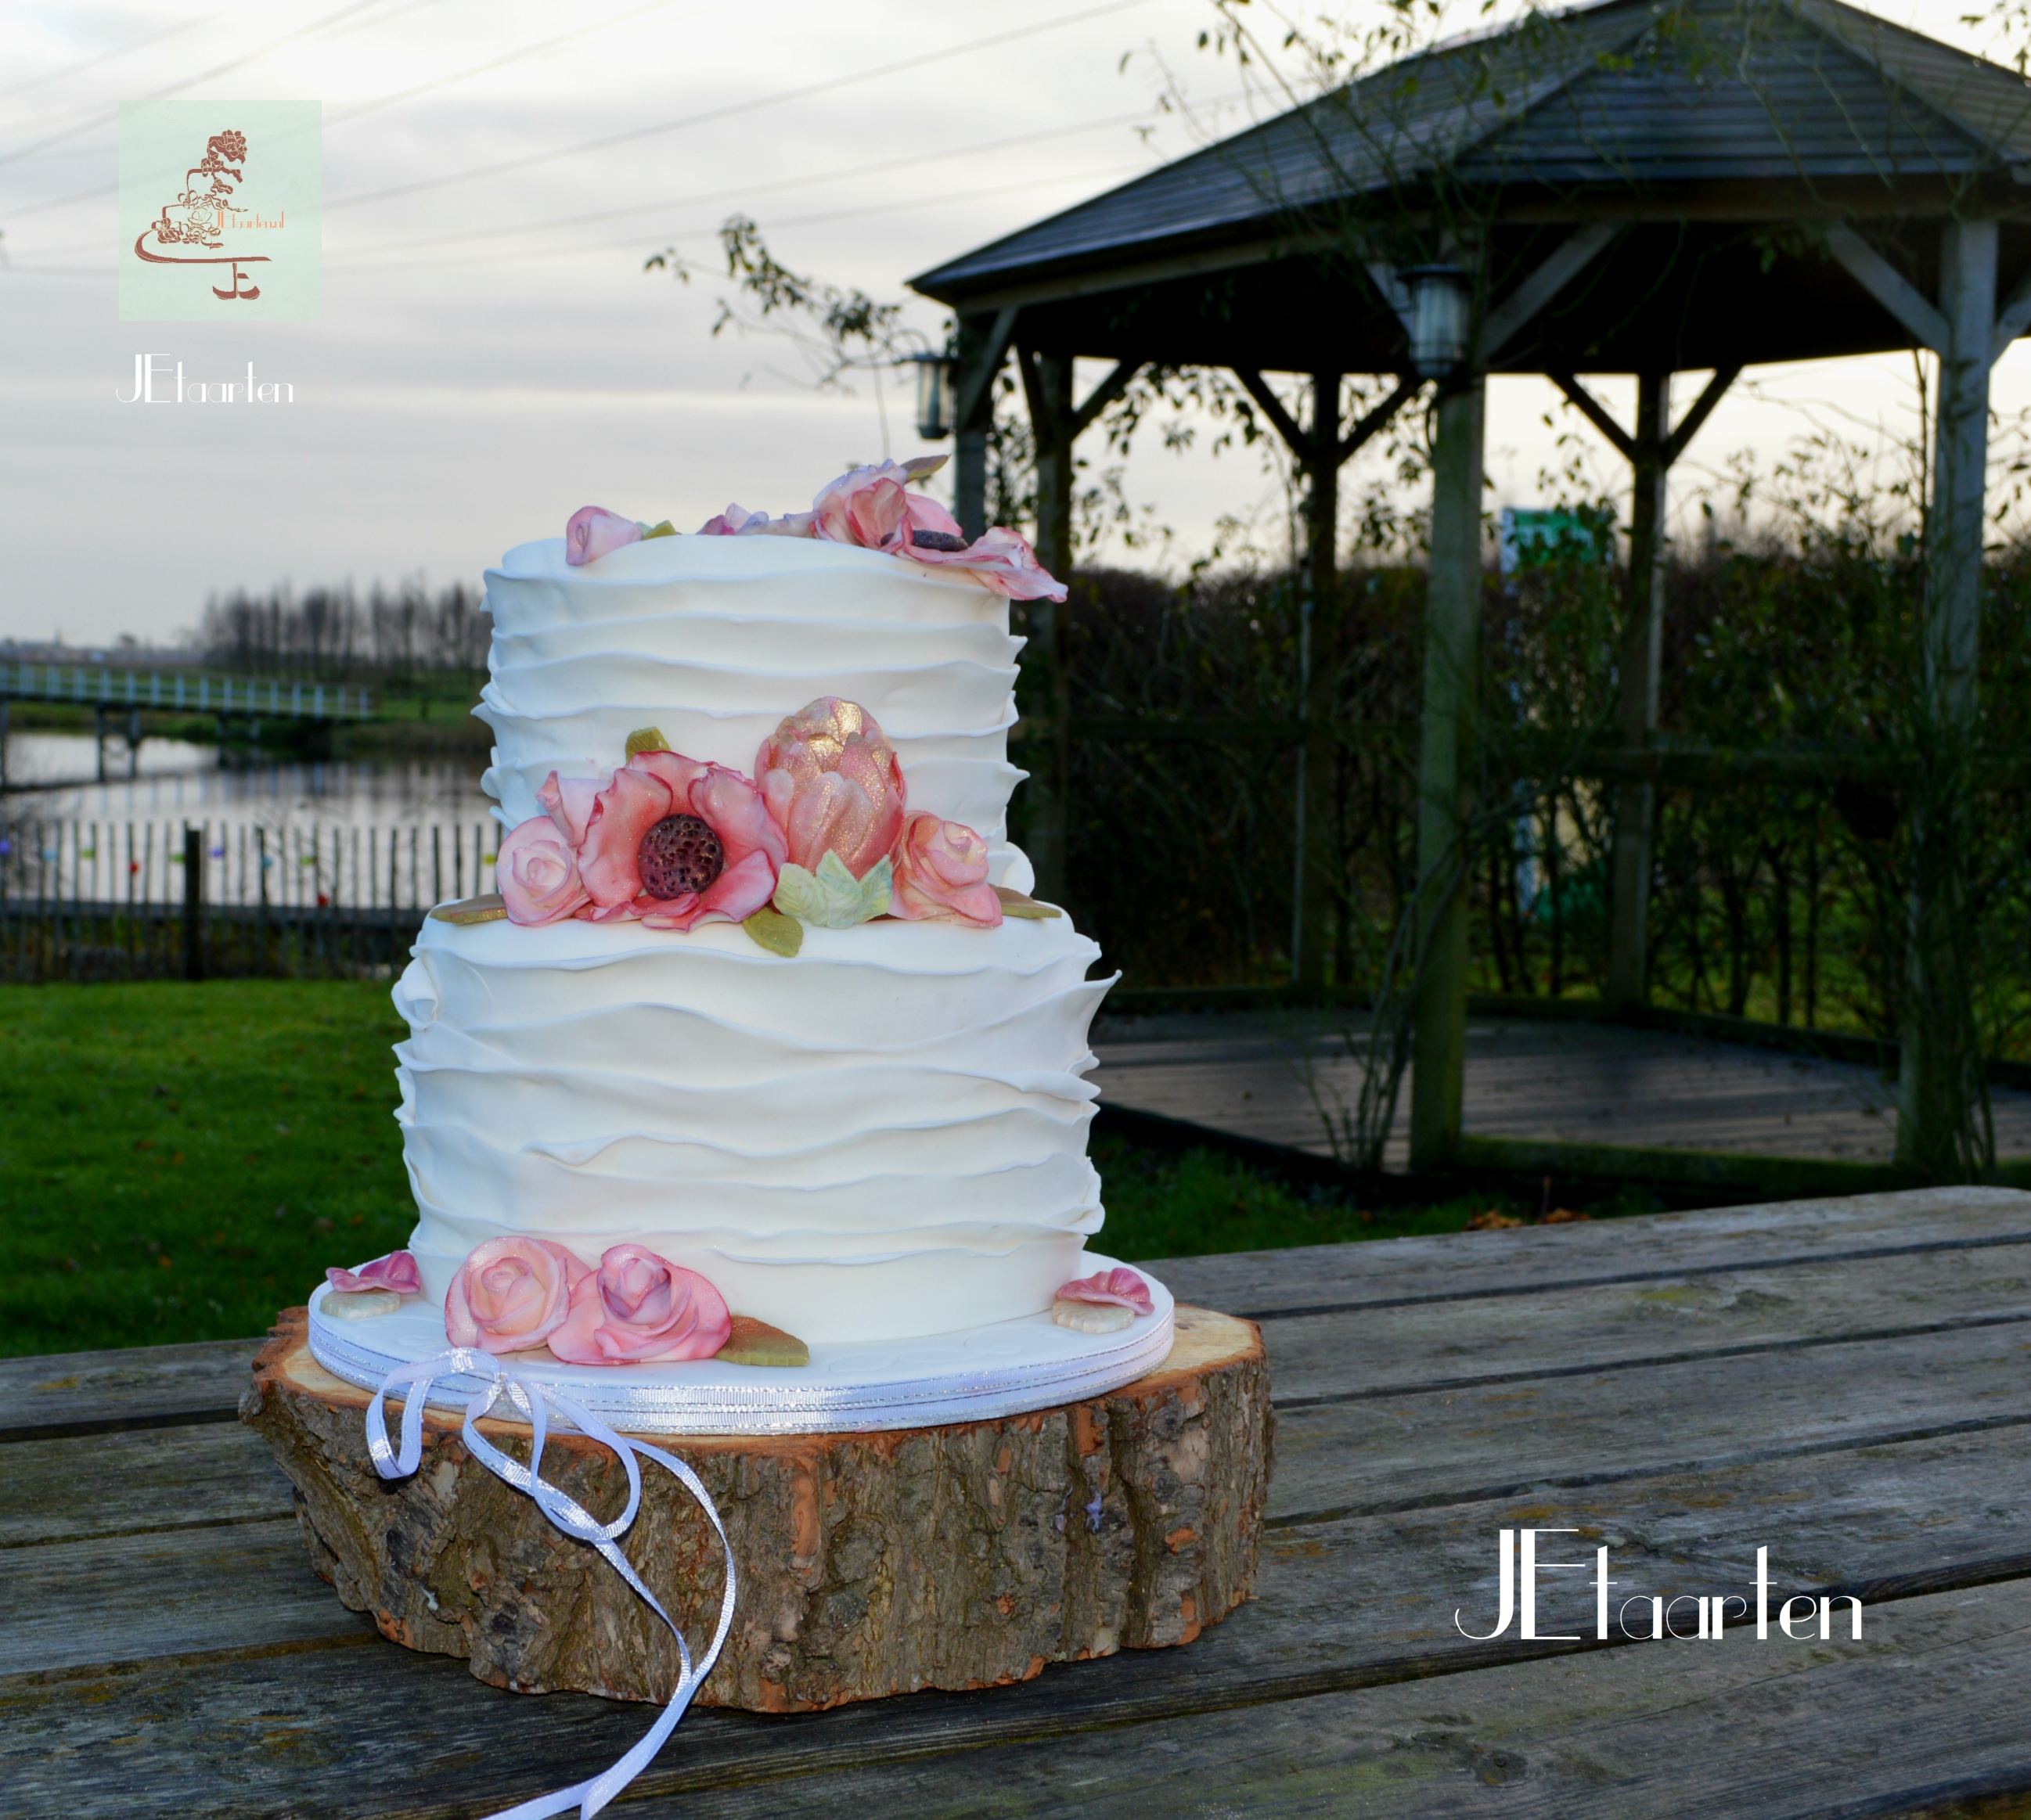 White ruffled wedding cake with pink sugar flowers